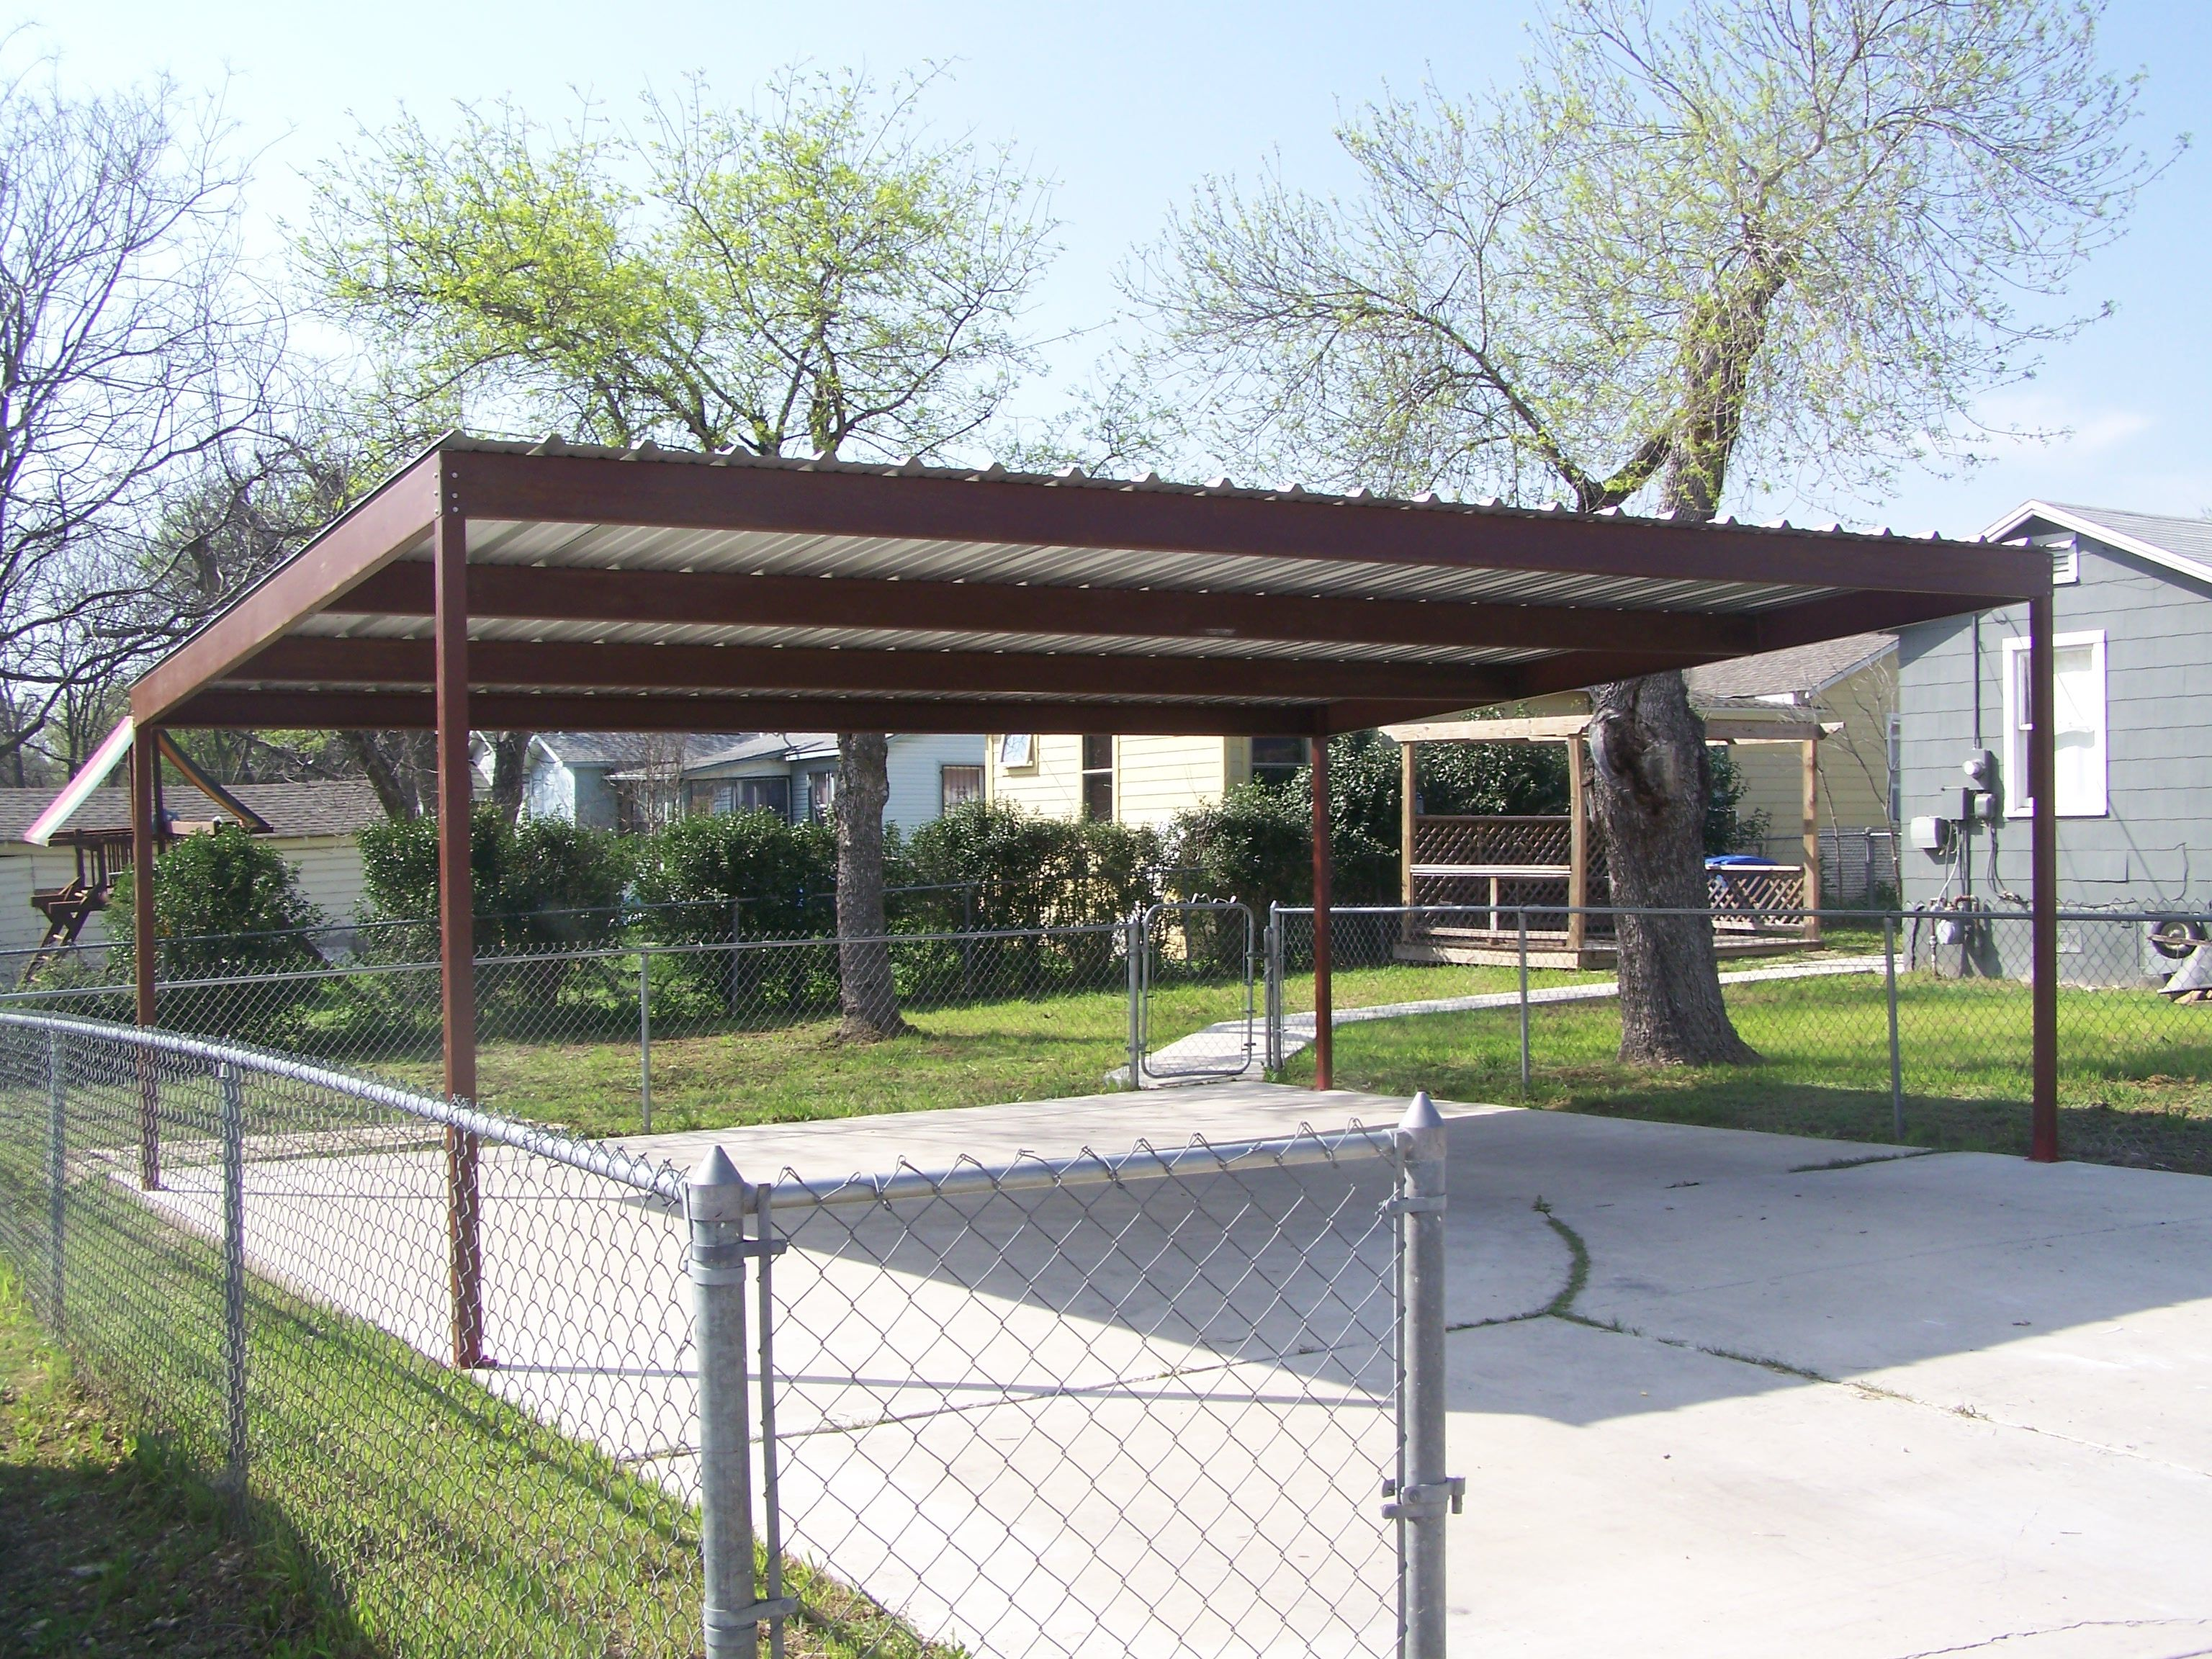 Carport Design Ideas pergola carport designs for your style Carport Designs Google Search More